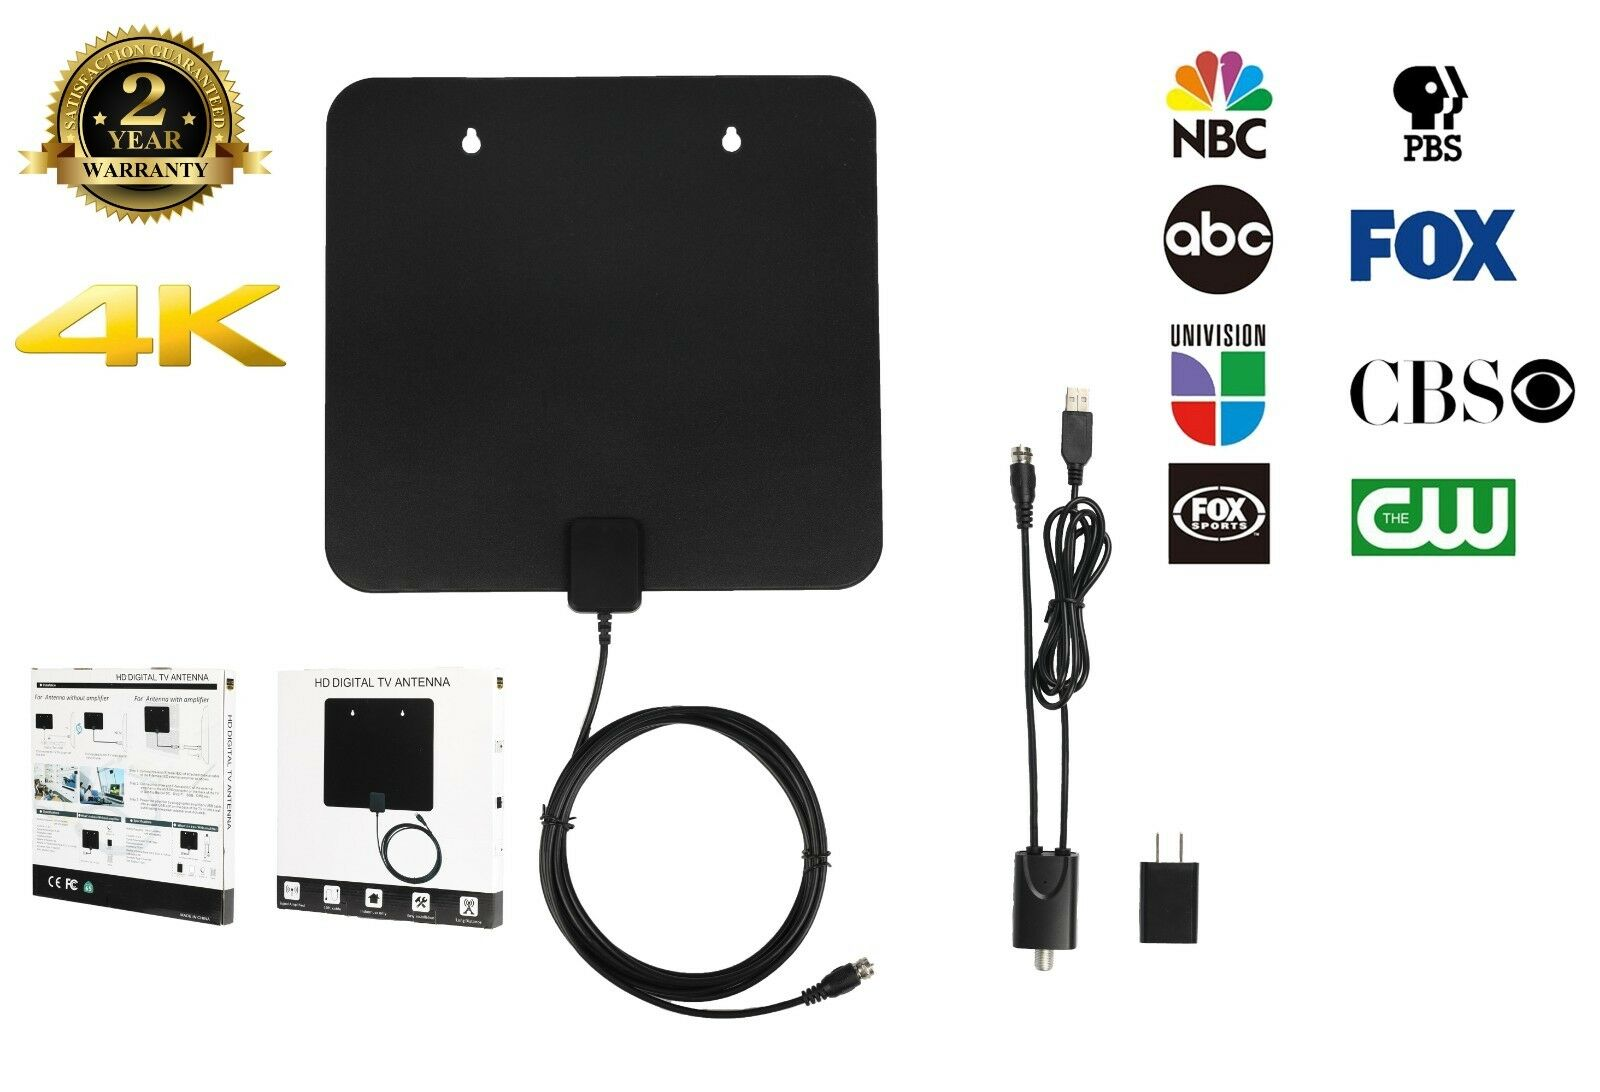 Facon [50 Mile] Super Slim Flat Indoor HDTV Amplified HDTV Antenna 10FT Coax. Available Now for 16.88